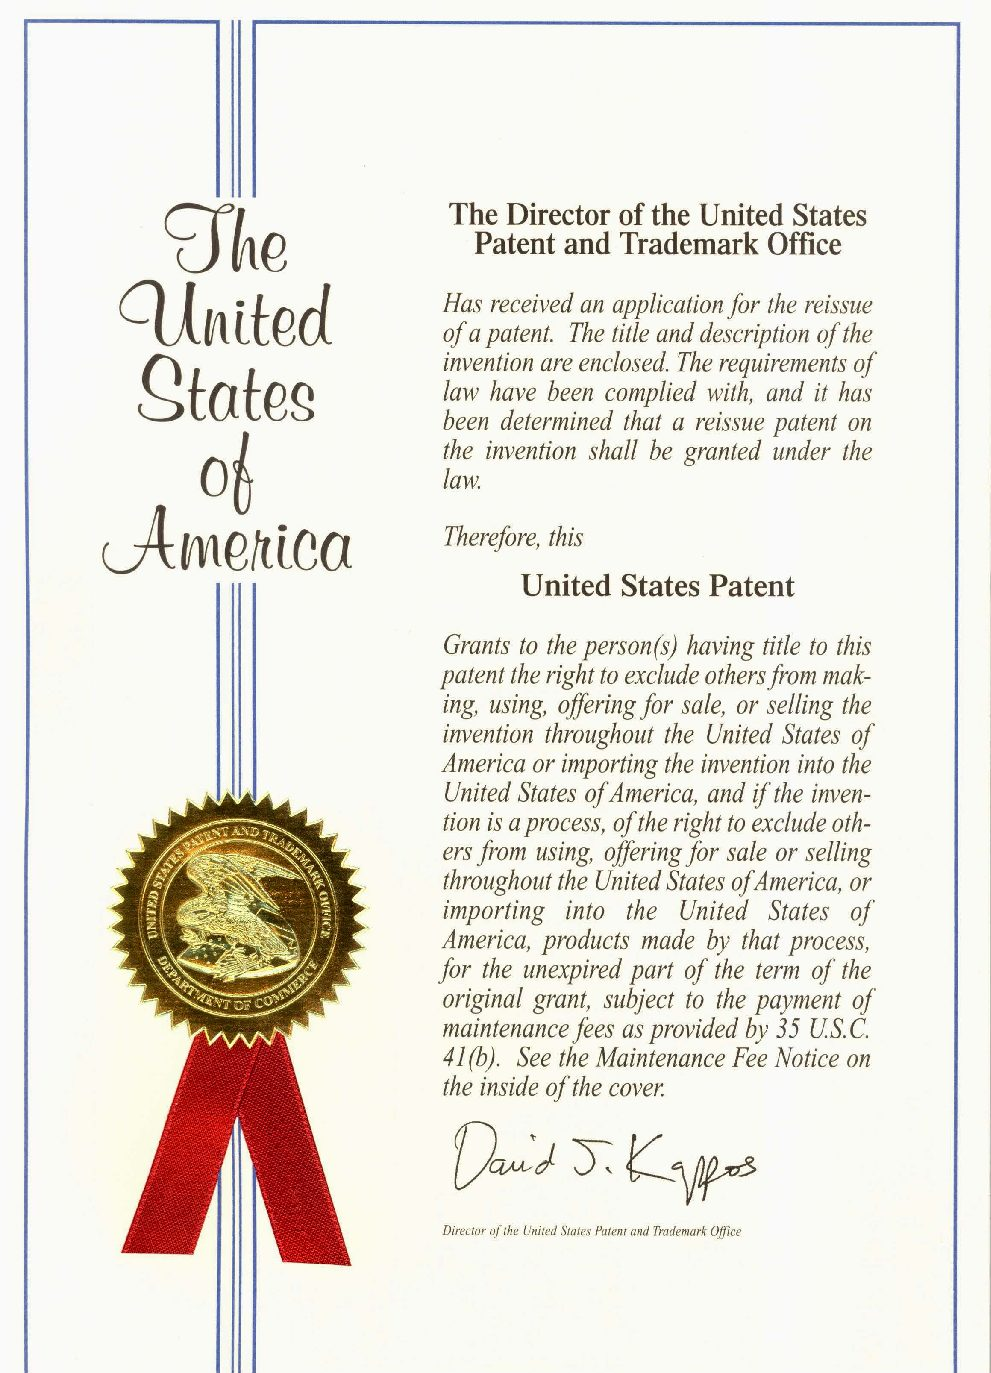 One–and done! Utility patent allowed in 9 months flat.